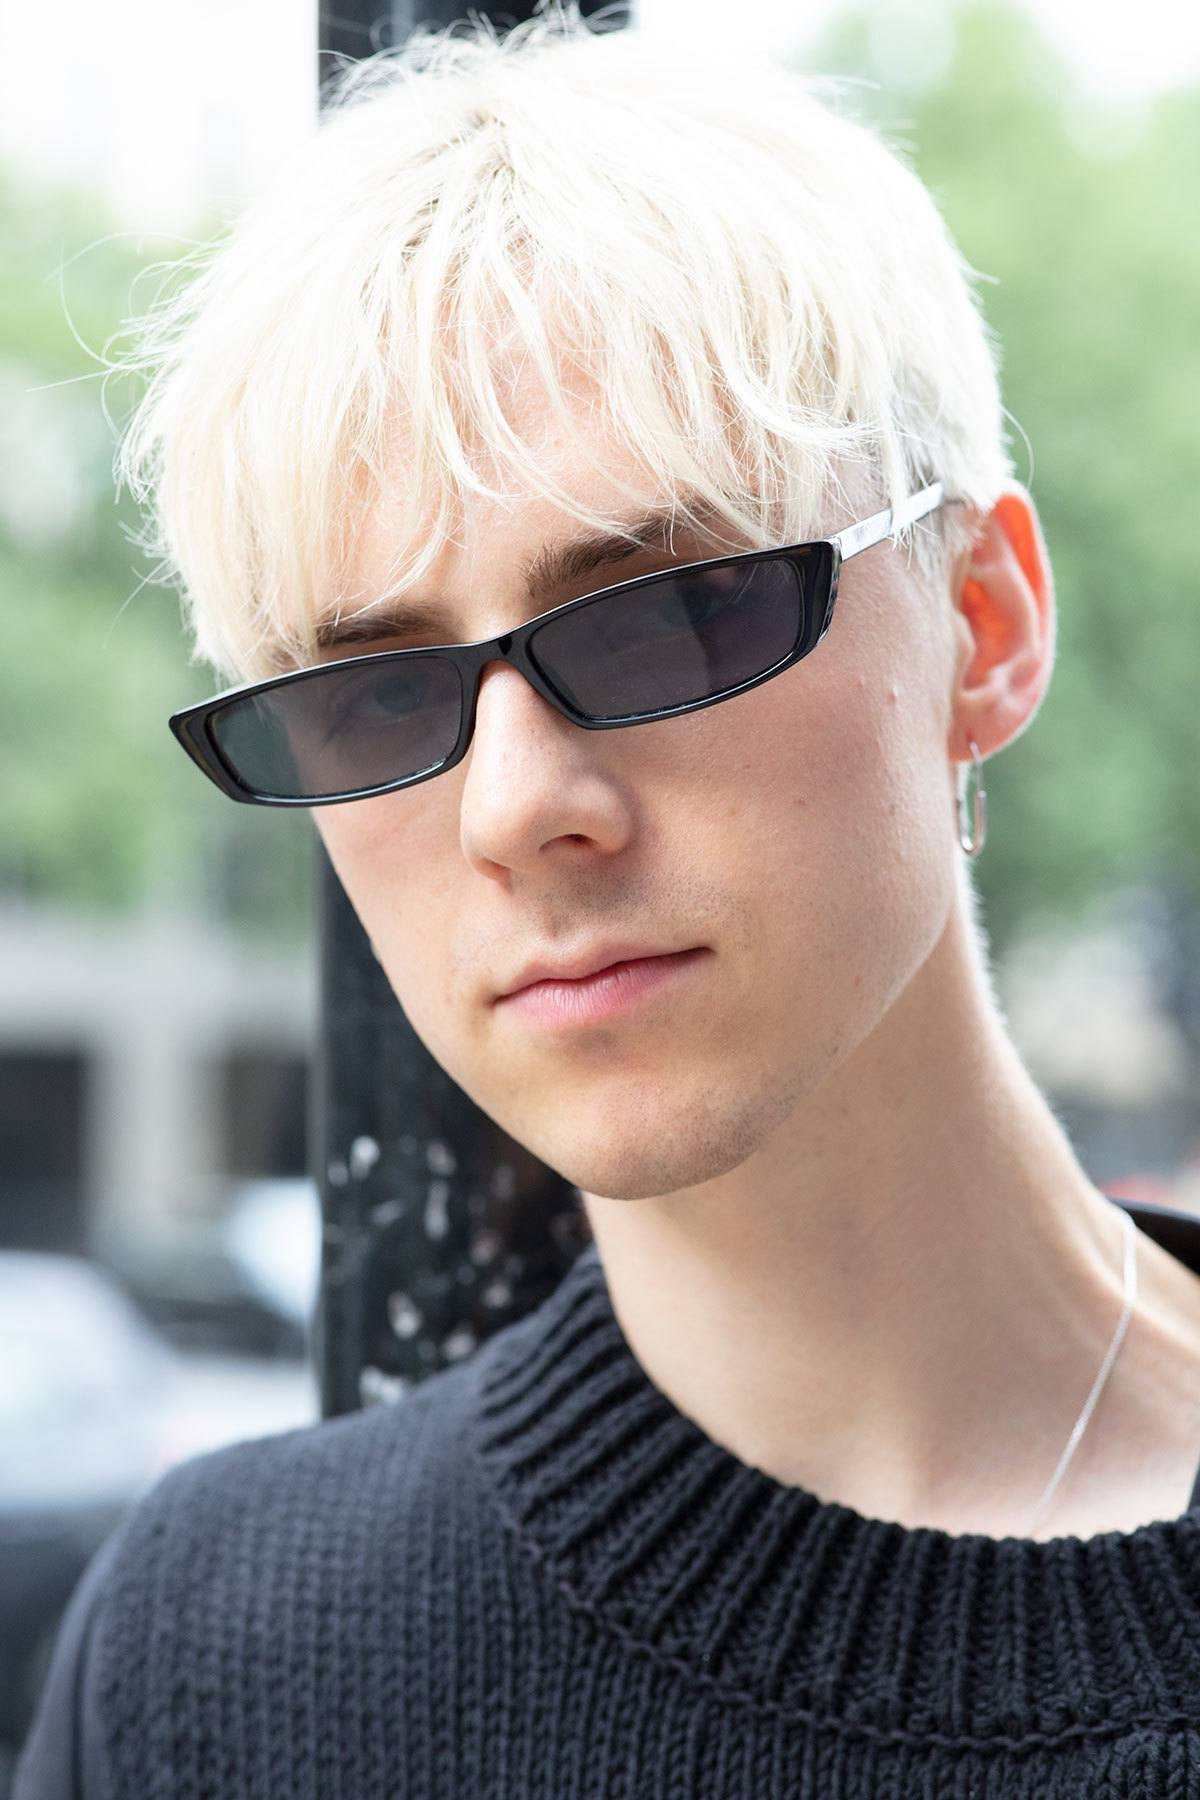 london fashion week men's ss19: close up shot of a man with platinum blonde crop haircut with long, textured fringe, wearing small matrix-style sunglasses and a black crew neck, posing on the street